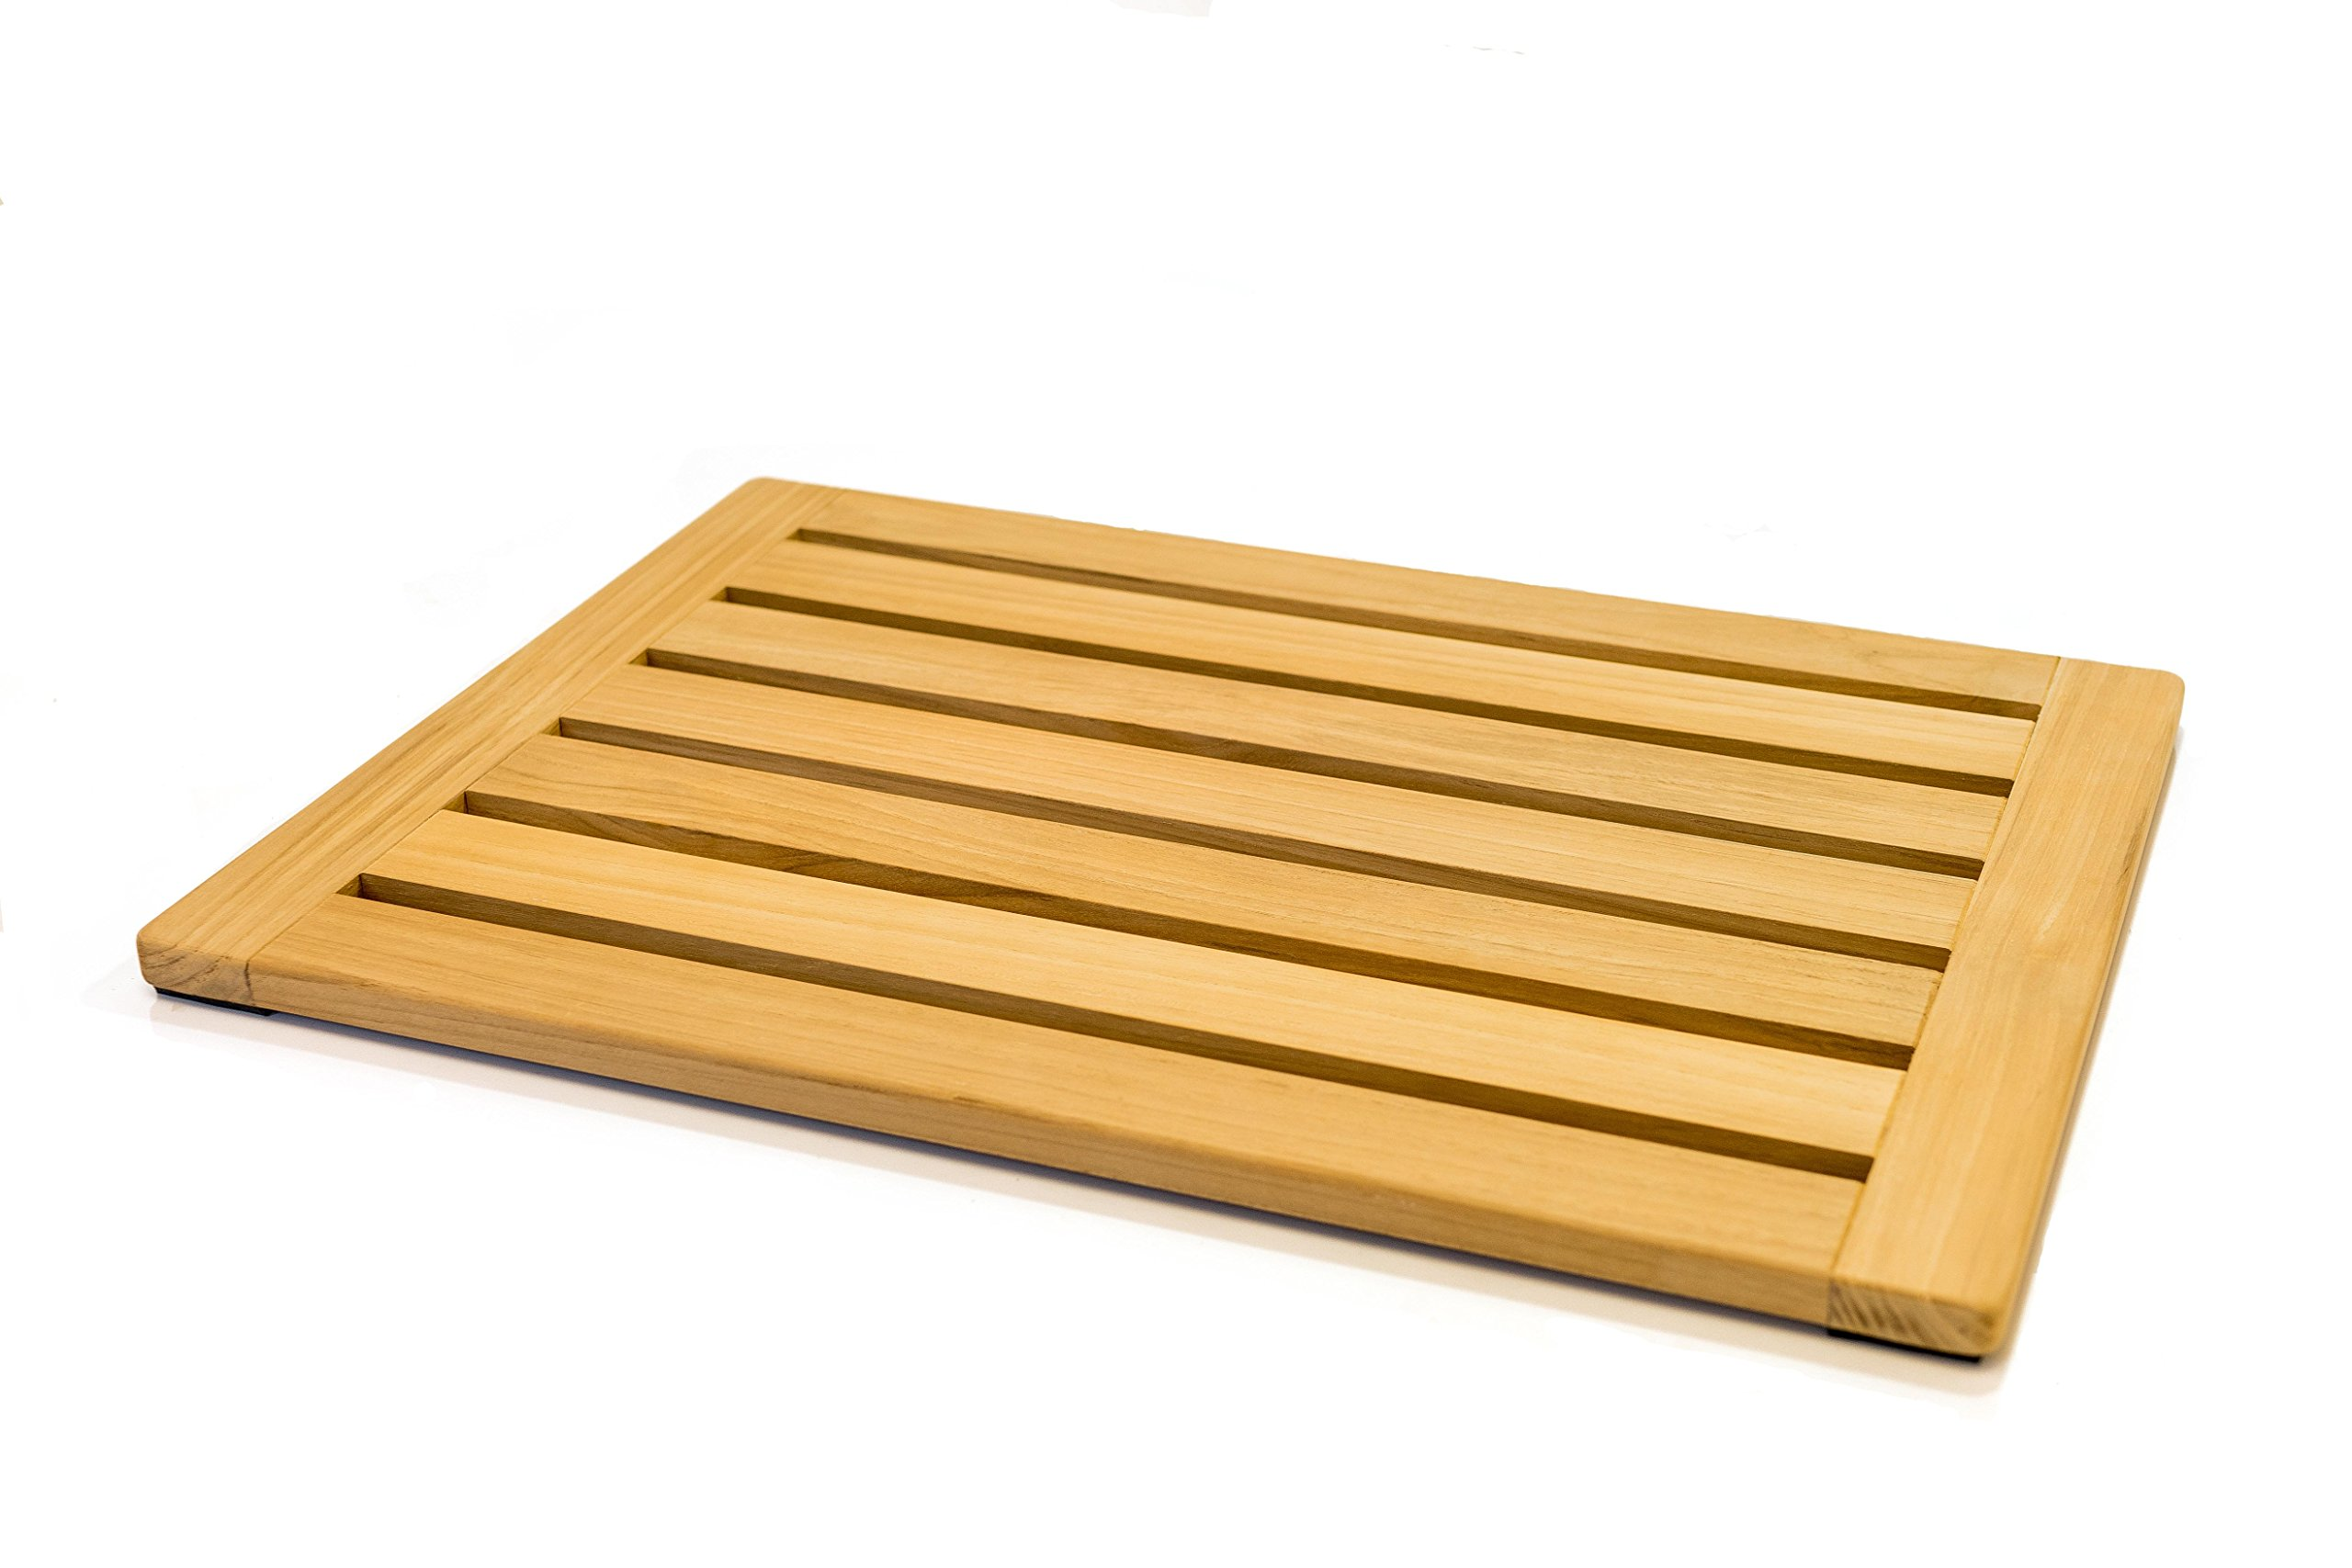 Natural Teak Wood Bath Mat Shower Mat by Home Fundamentals: Non-Slip Bathtub Sauna Spa Mat Sealed Nonslip 23in x 15.75in x 1in